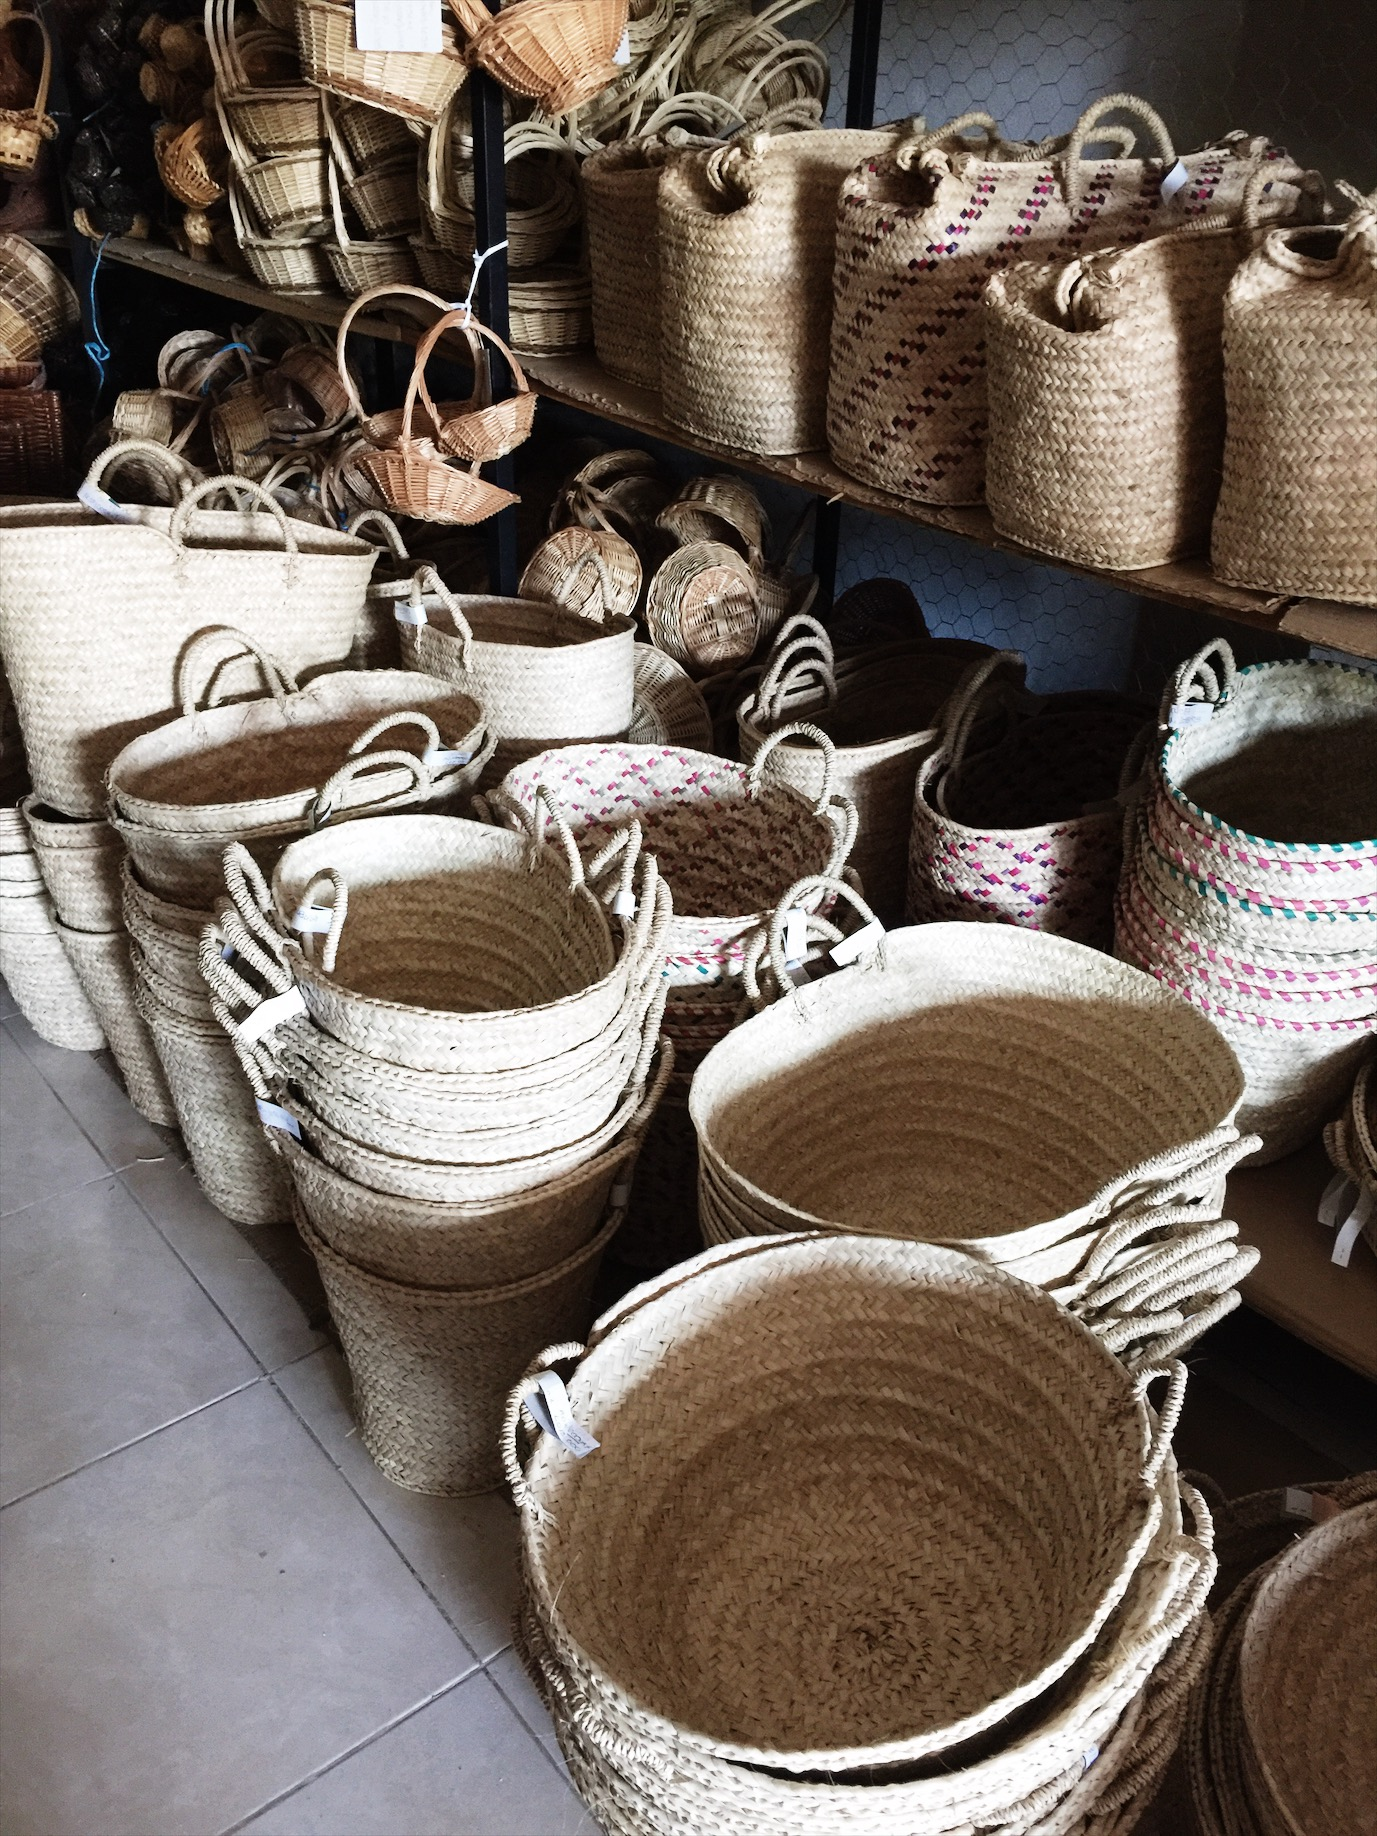 I can find thousands of baskets, but a beaux basket isn't one. We use local artisans to make this time-honored tradition that is dying out. And let me tell you, it was HARD to find grandparents who still make our Blondies.